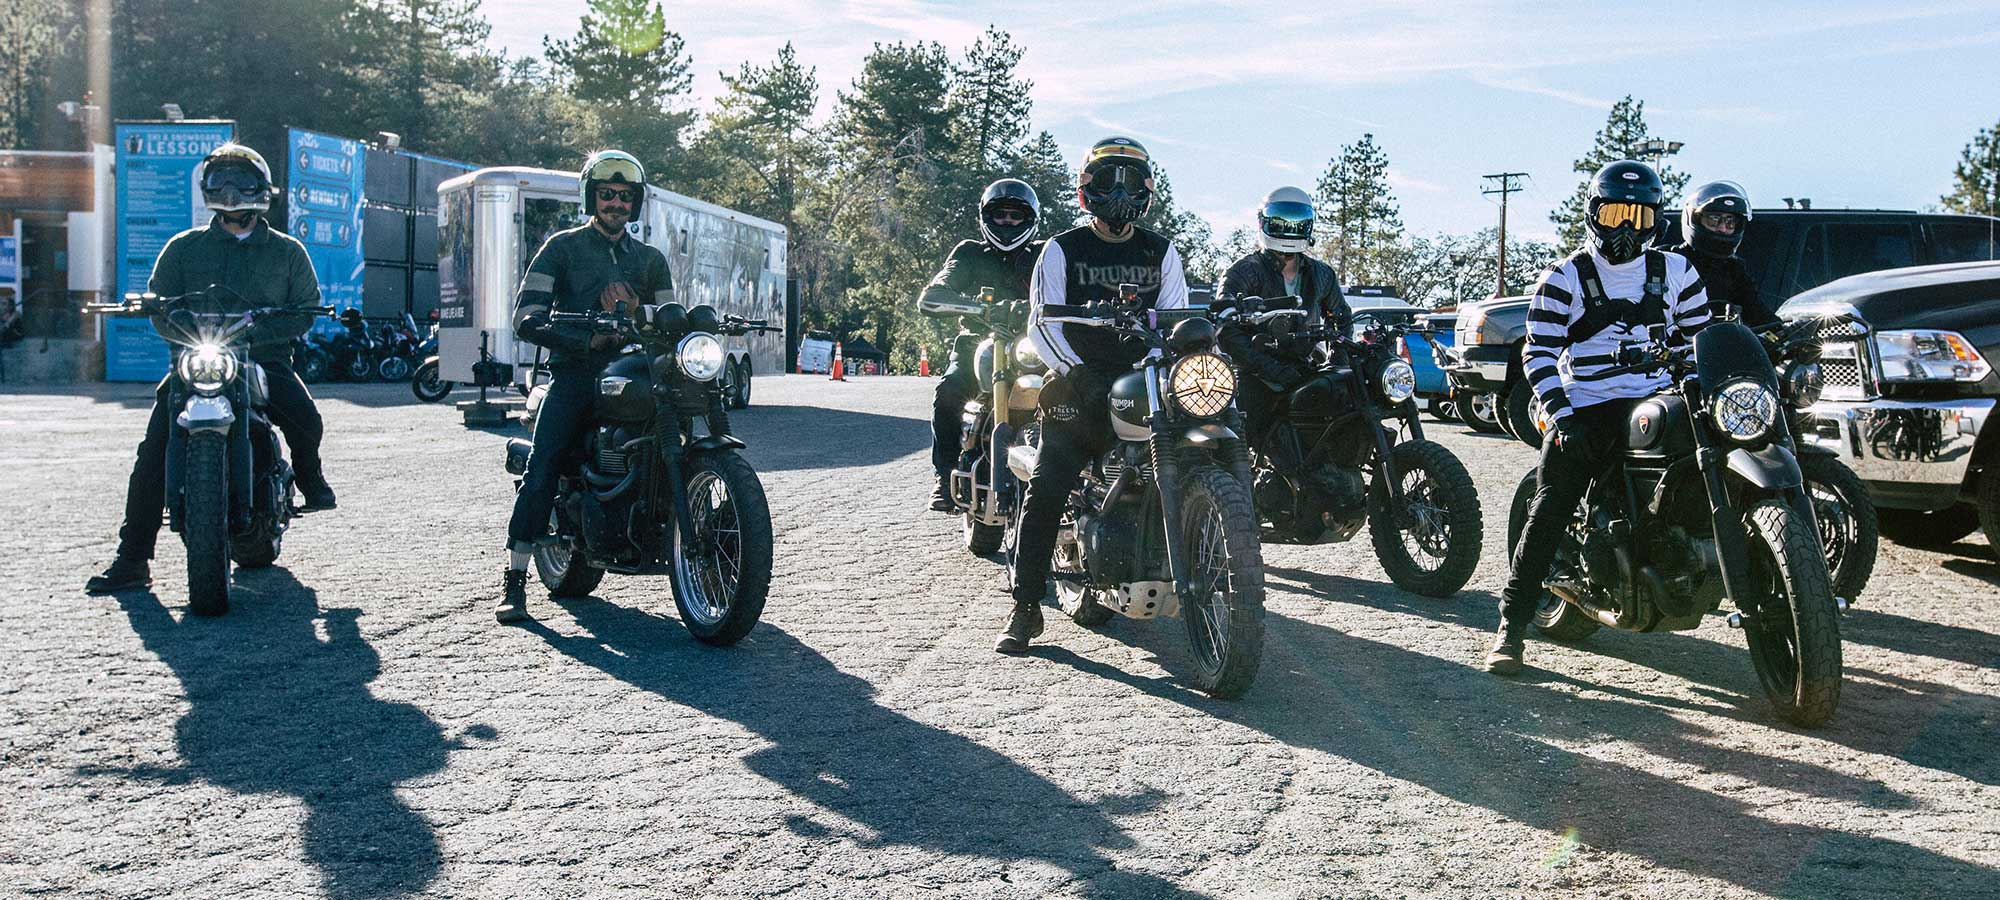 Riding roads and trails around Mountain High, California, for the third annual HighPipe Scrambler Moto Rally!